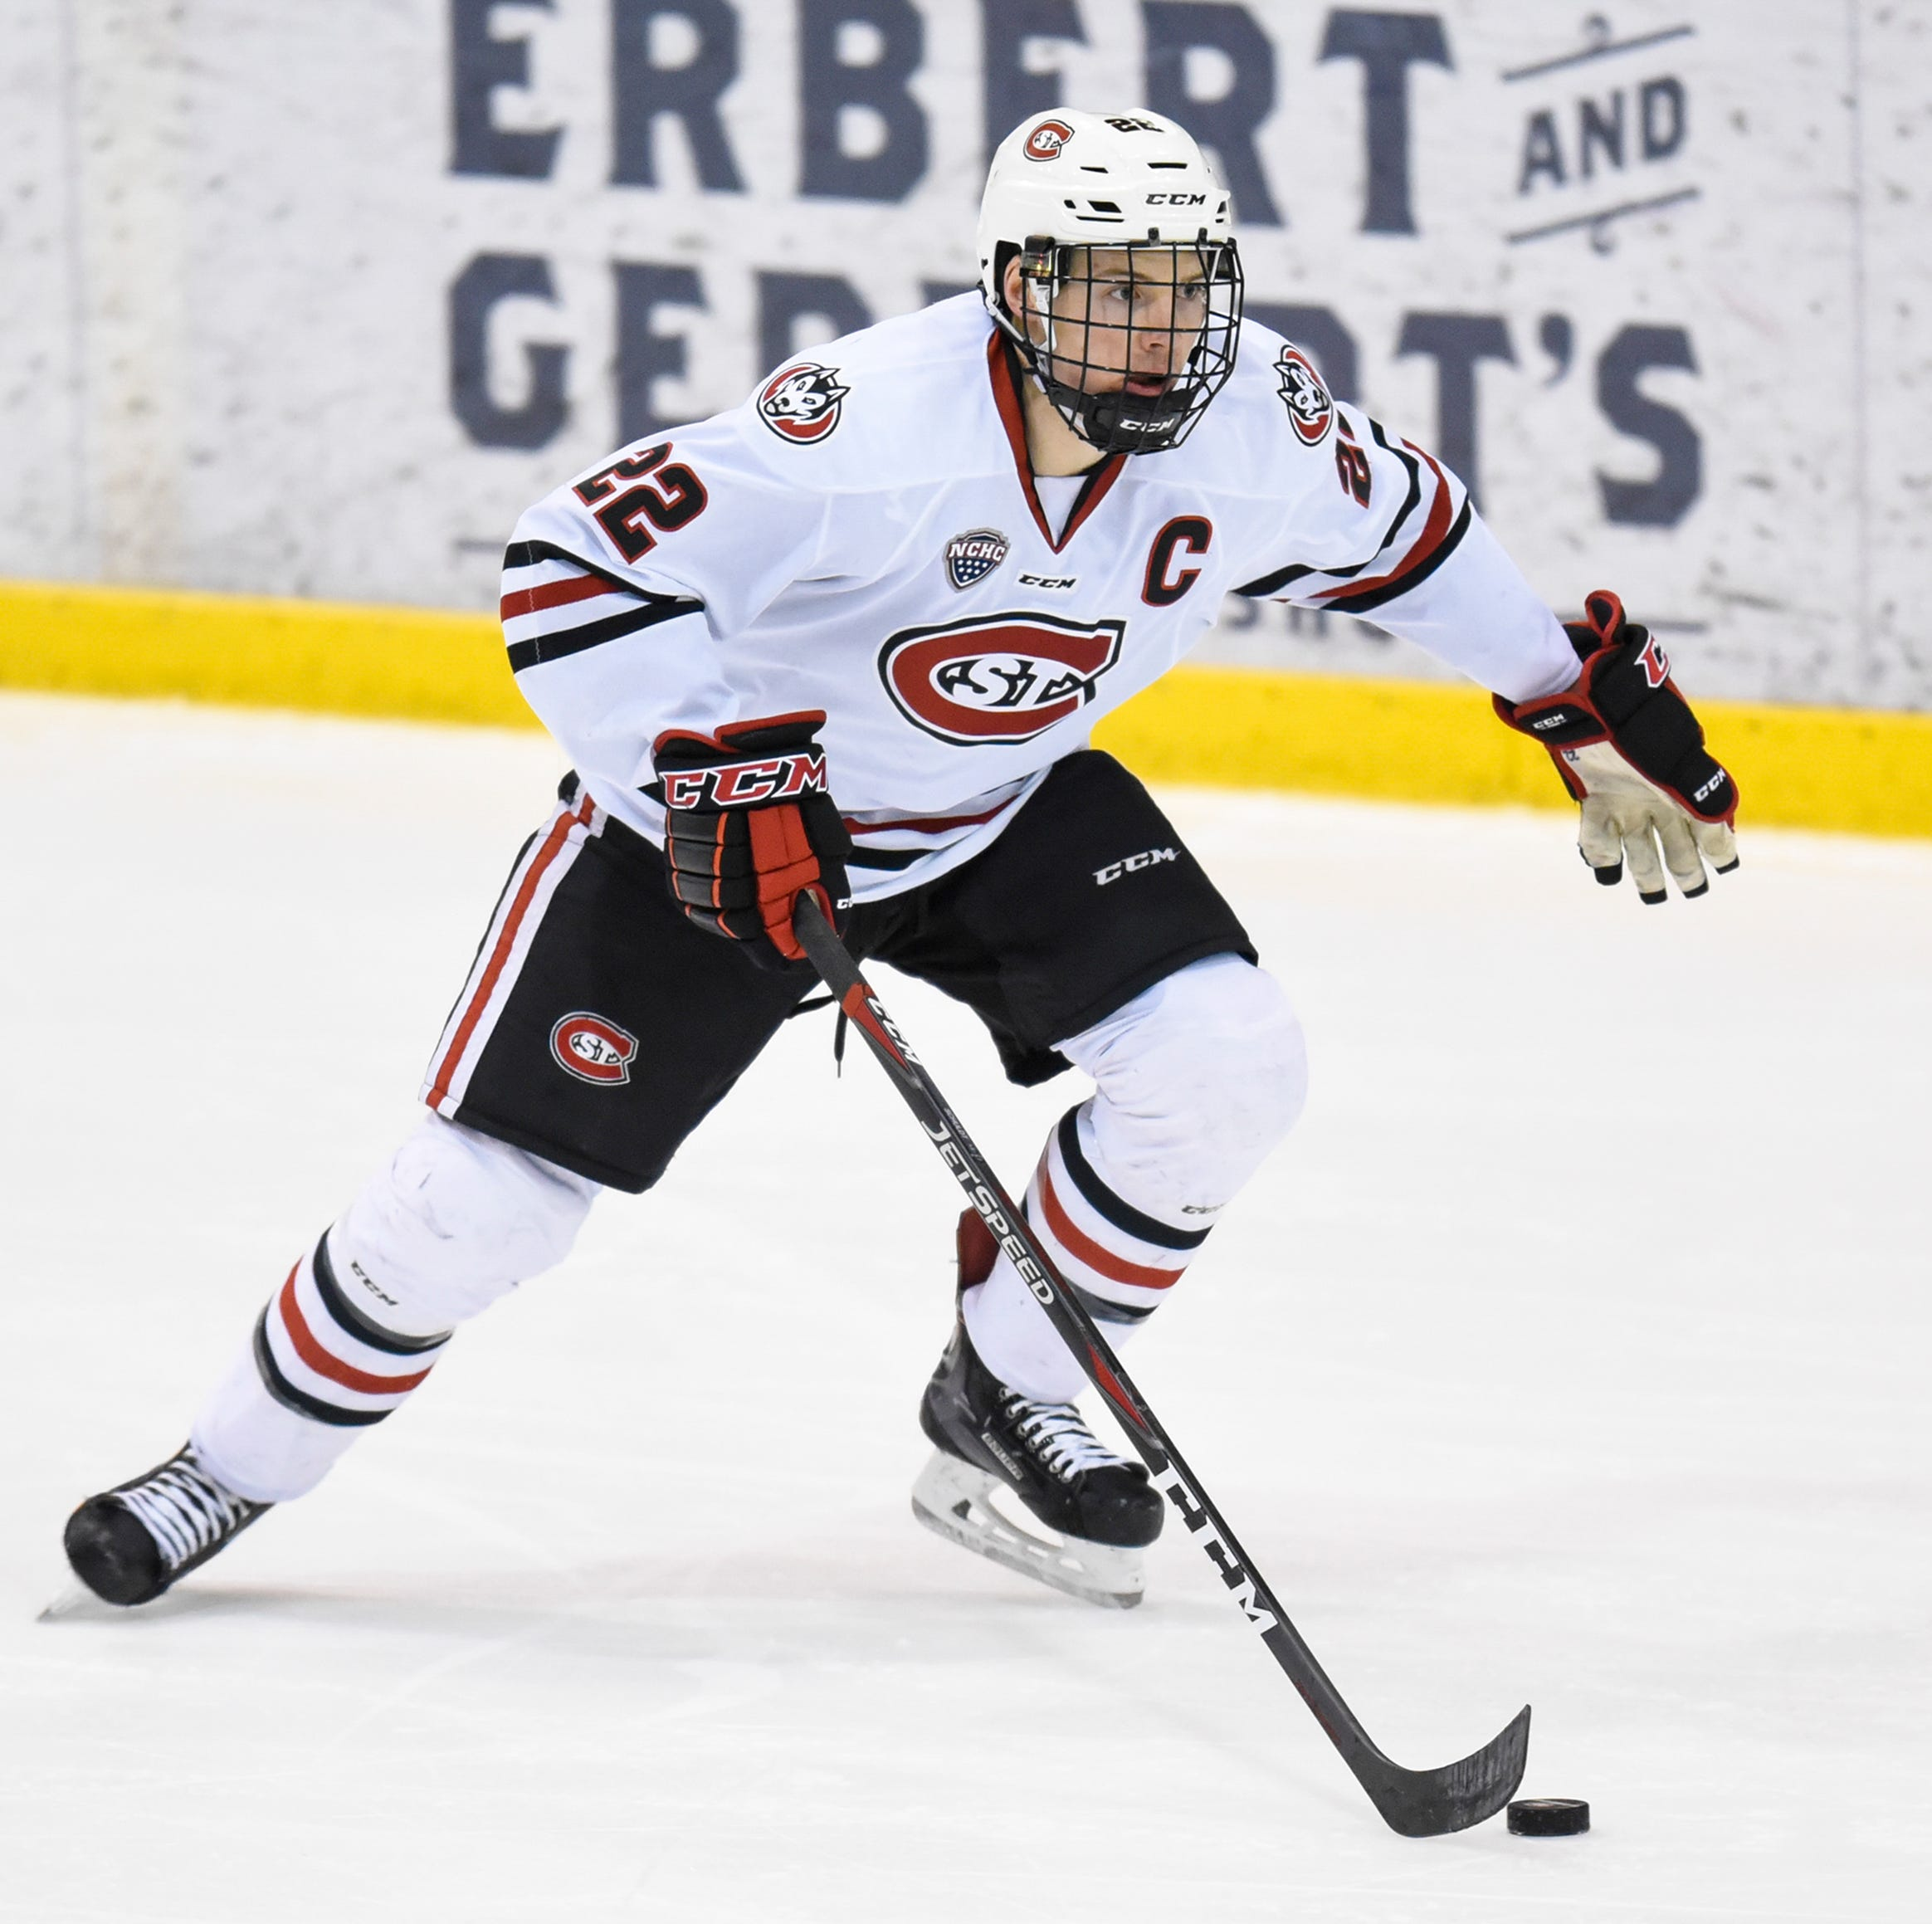 SCSU Huskies hockey star Jimmy Schuldt hopes to make some more memories at Frozen Faceoff